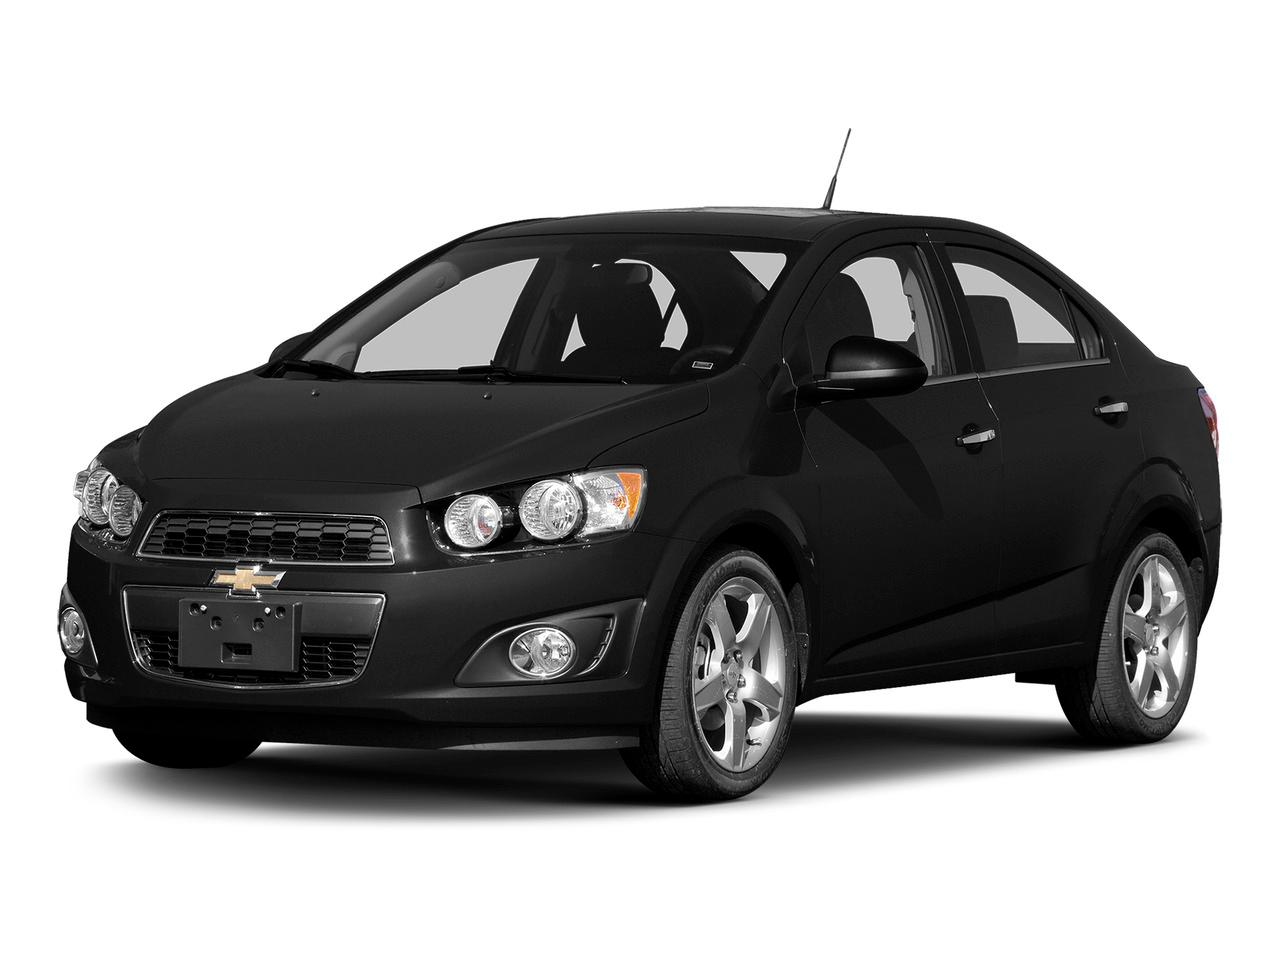 2015 Chevrolet Sonic Vehicle Photo in Rockville, MD 20852